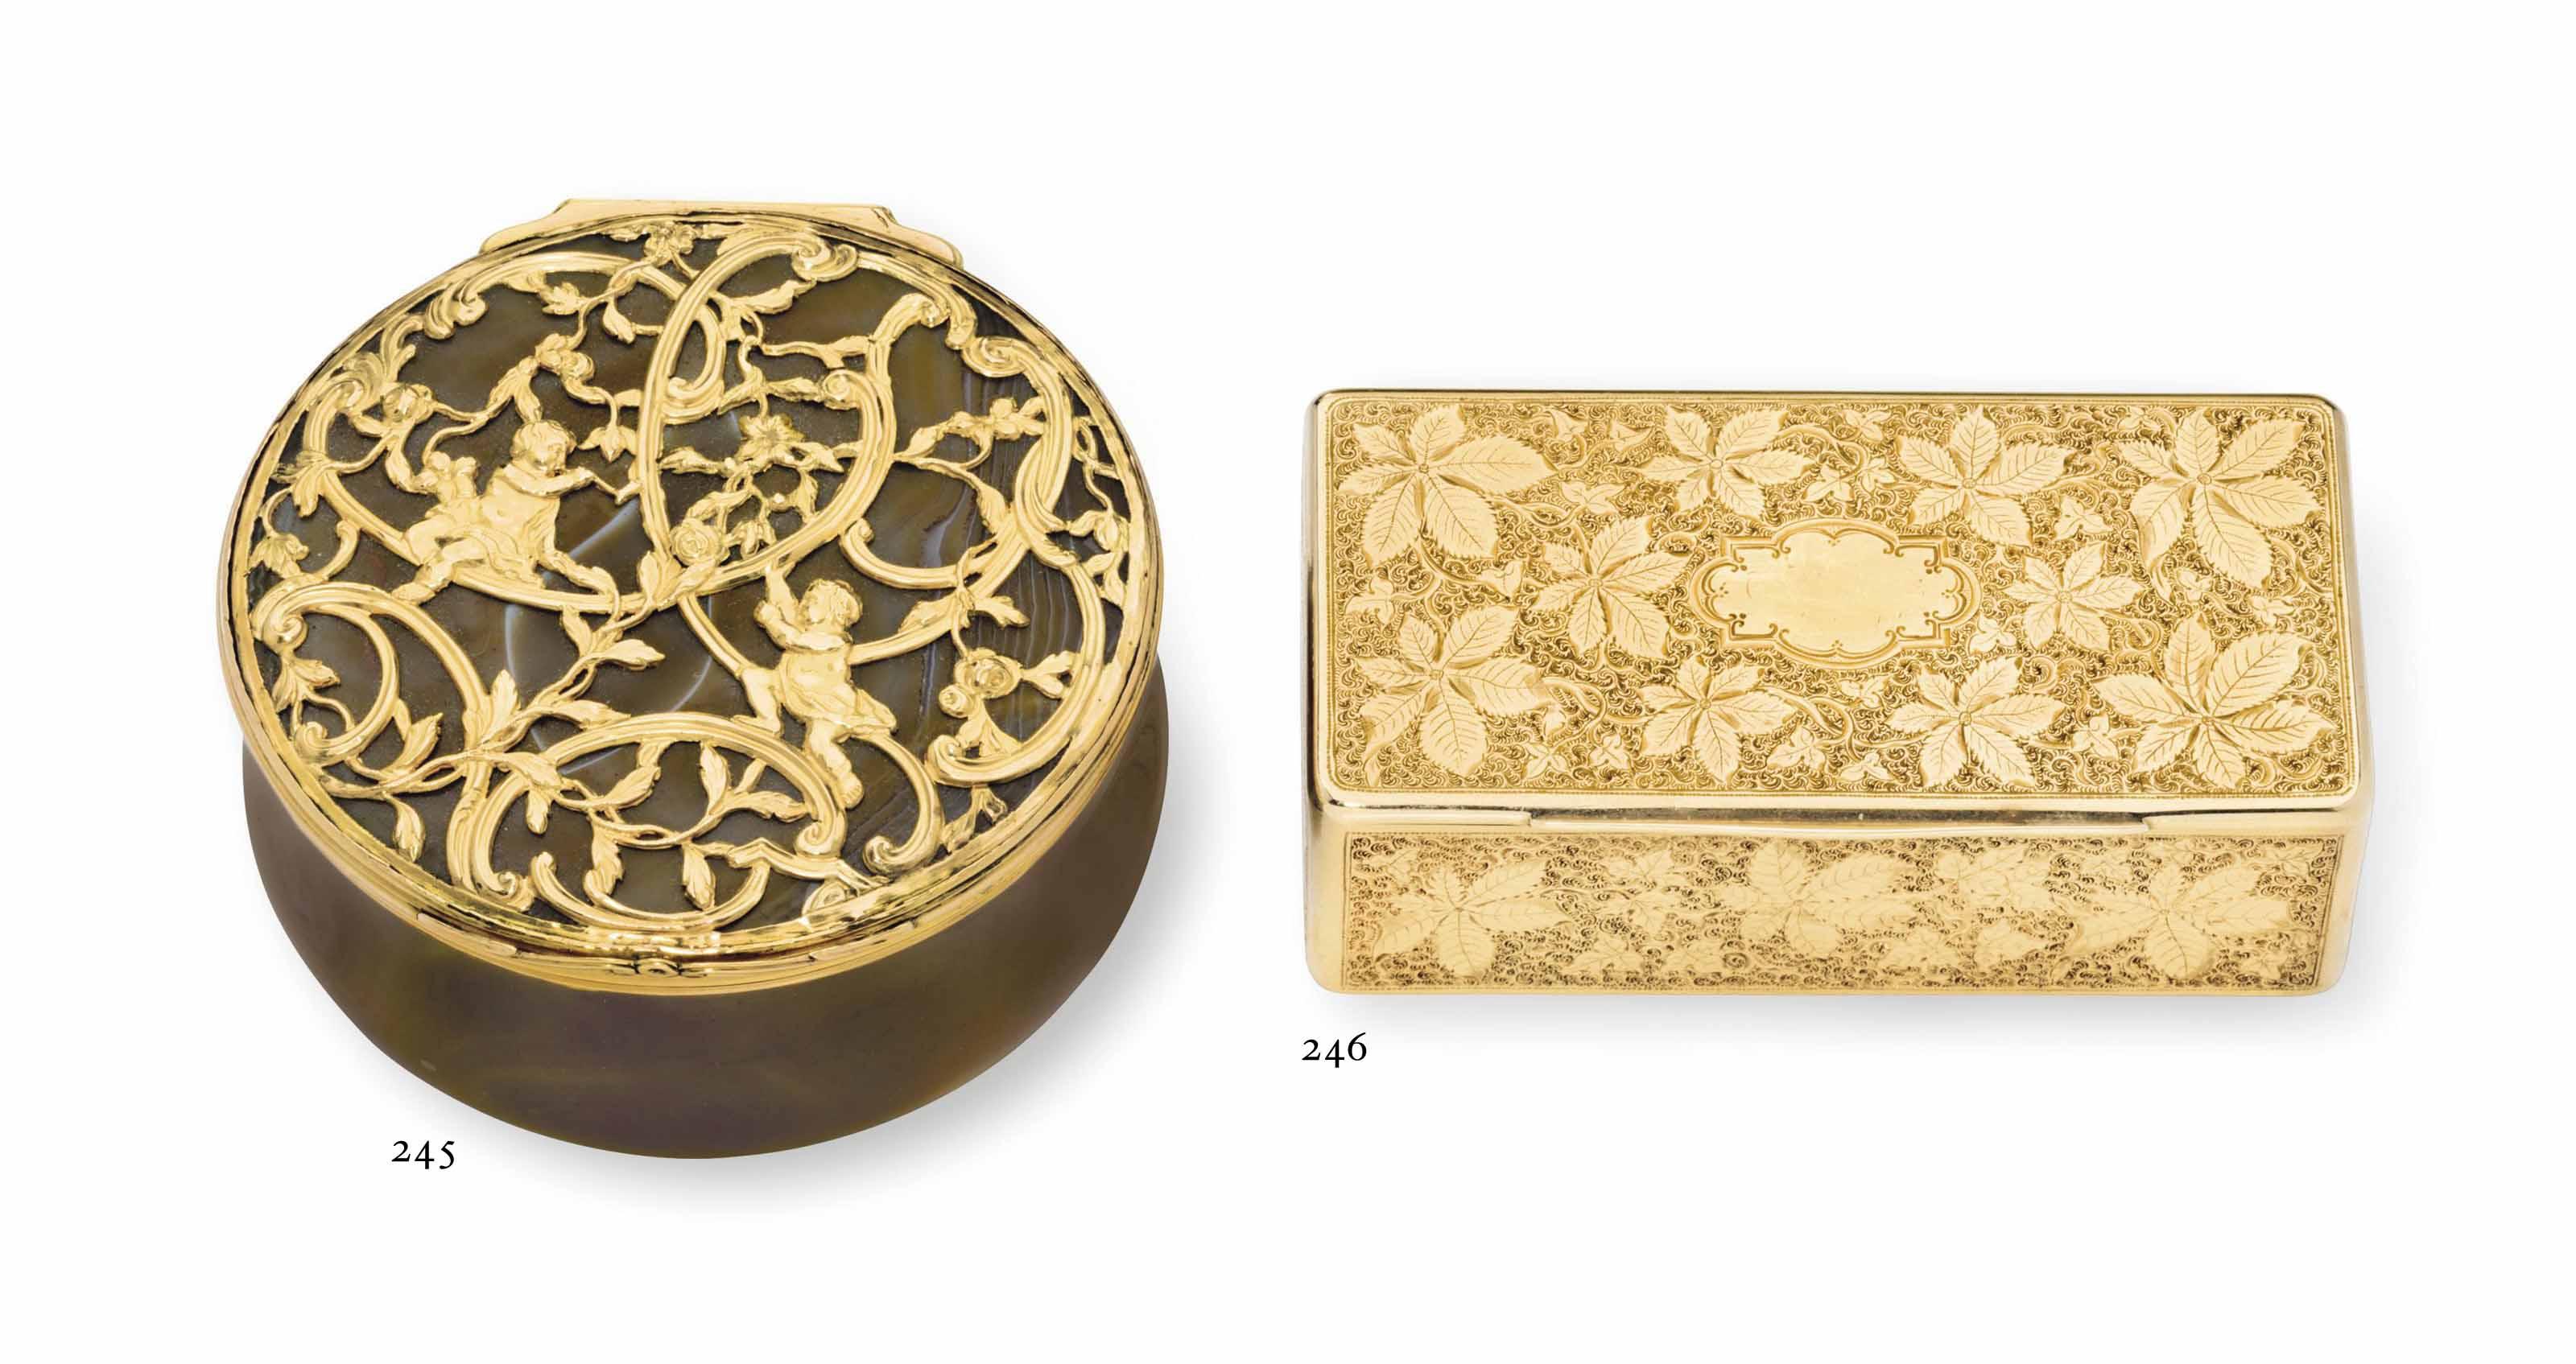 A GERMAN GOLD SNUFF BOX